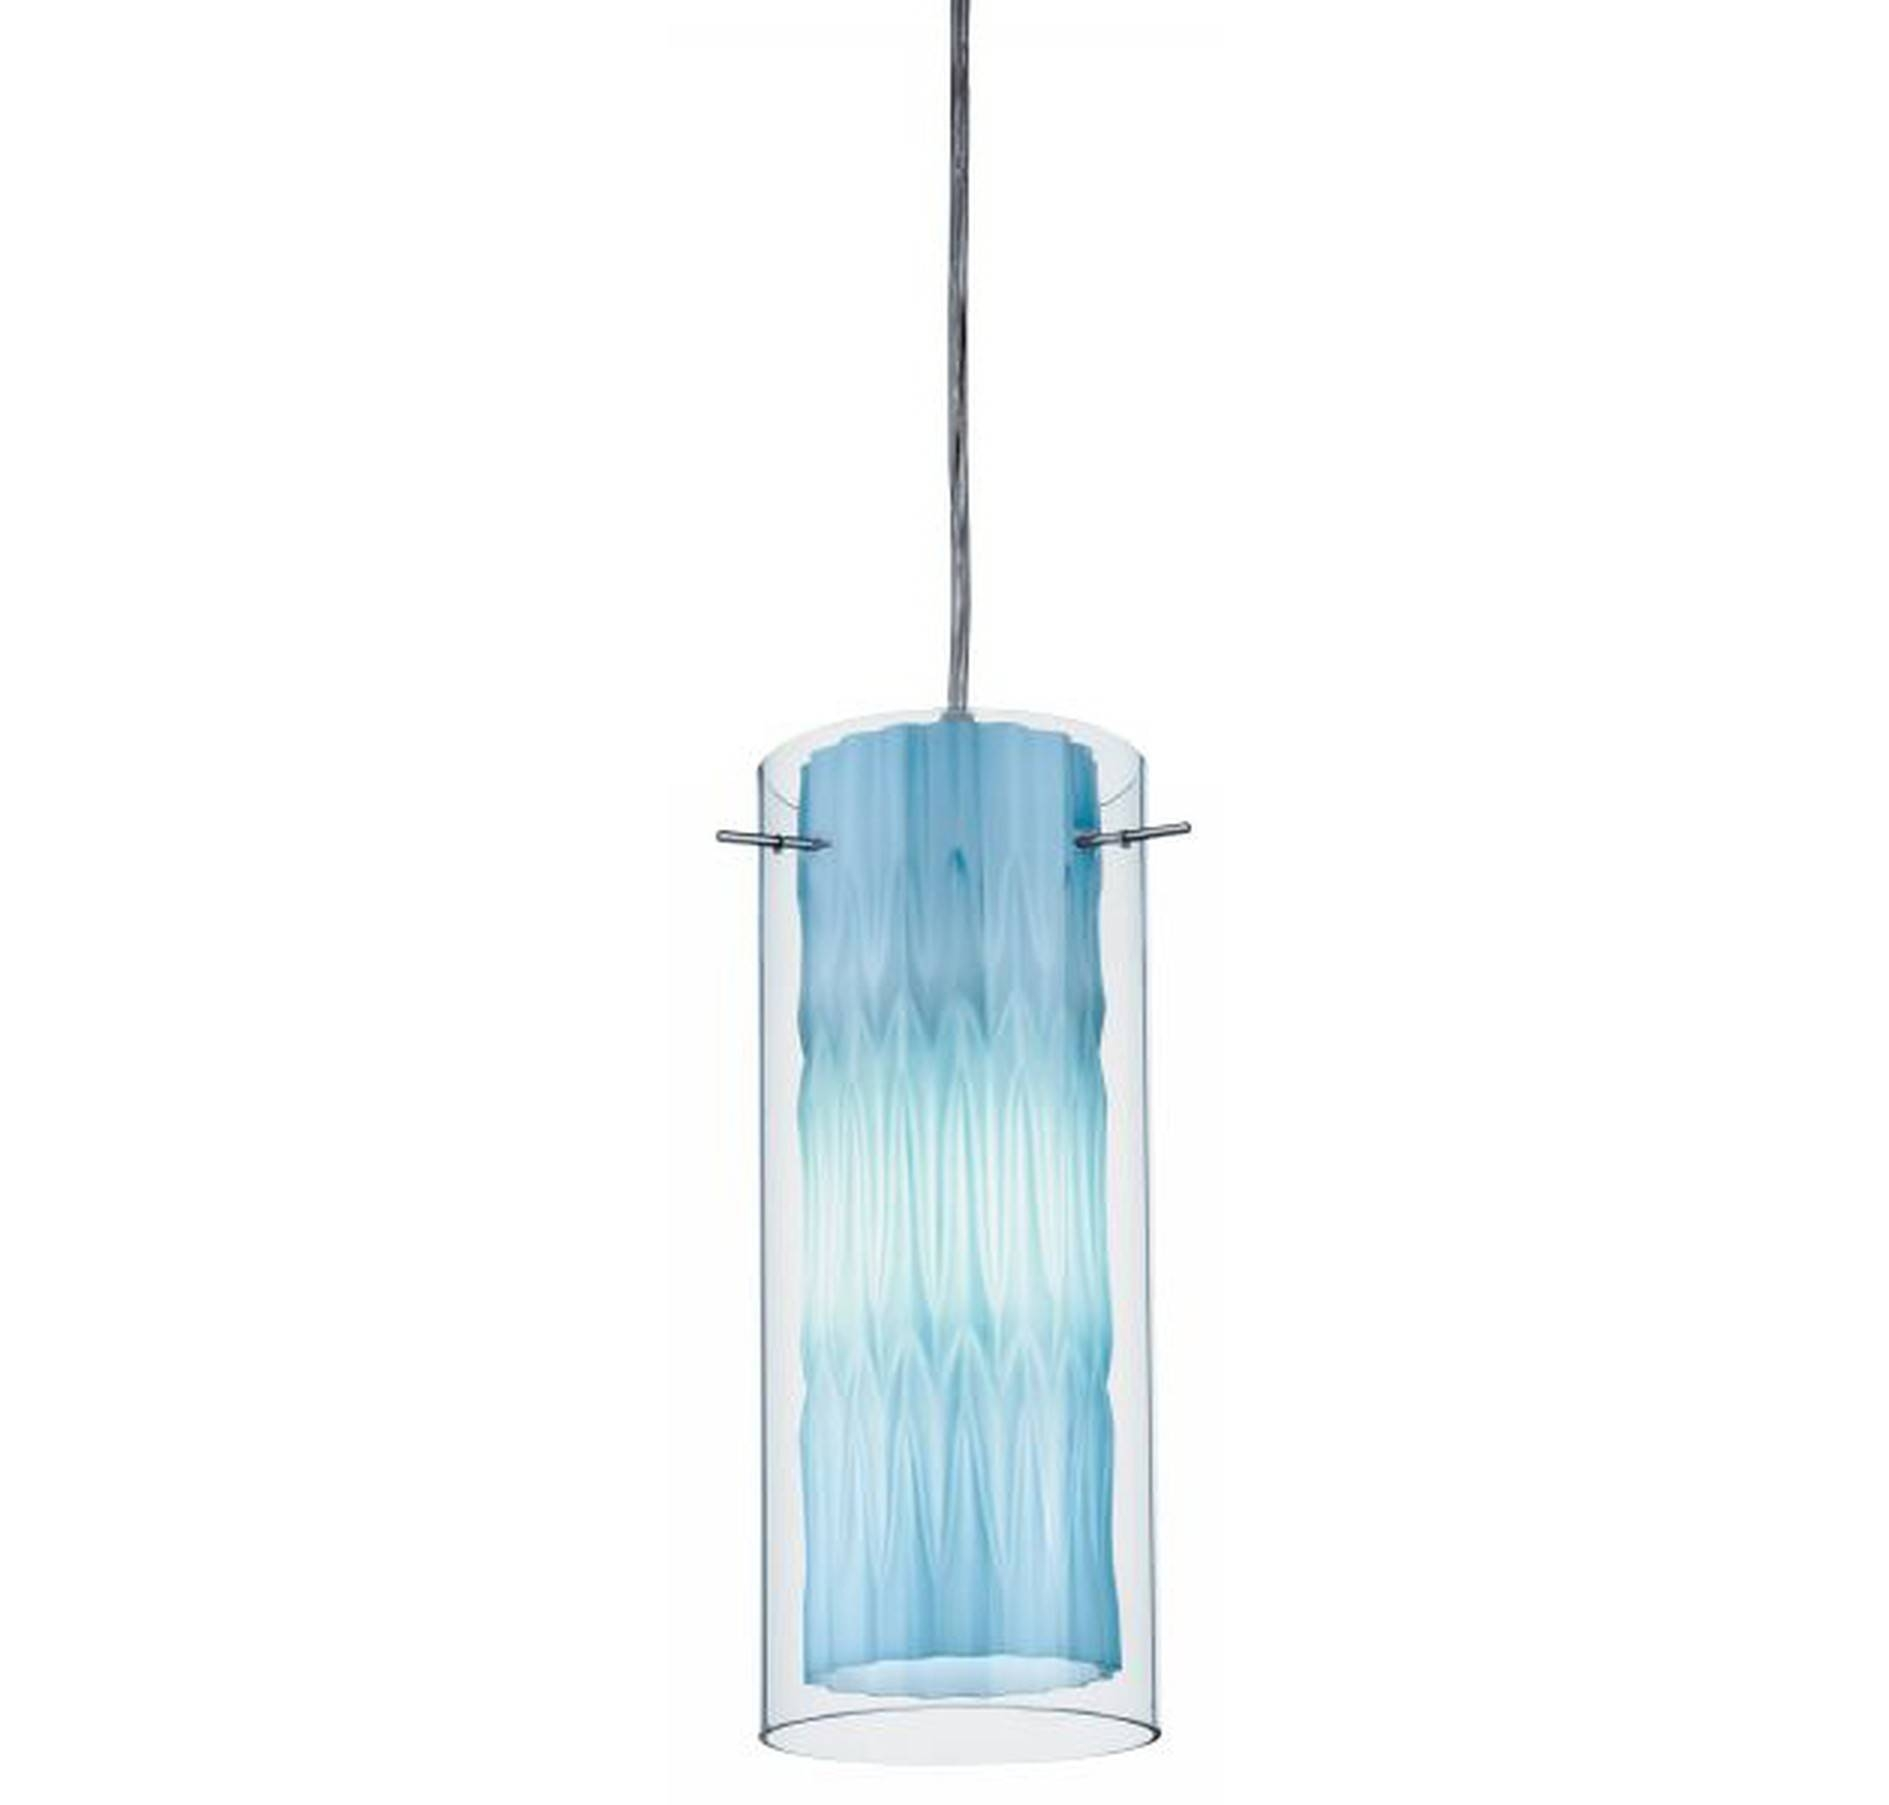 Stylish Blue Glass Pendant Light Related To House Decorating inside Turquoise Blue Glass Pendant Lights (Image 12 of 15)